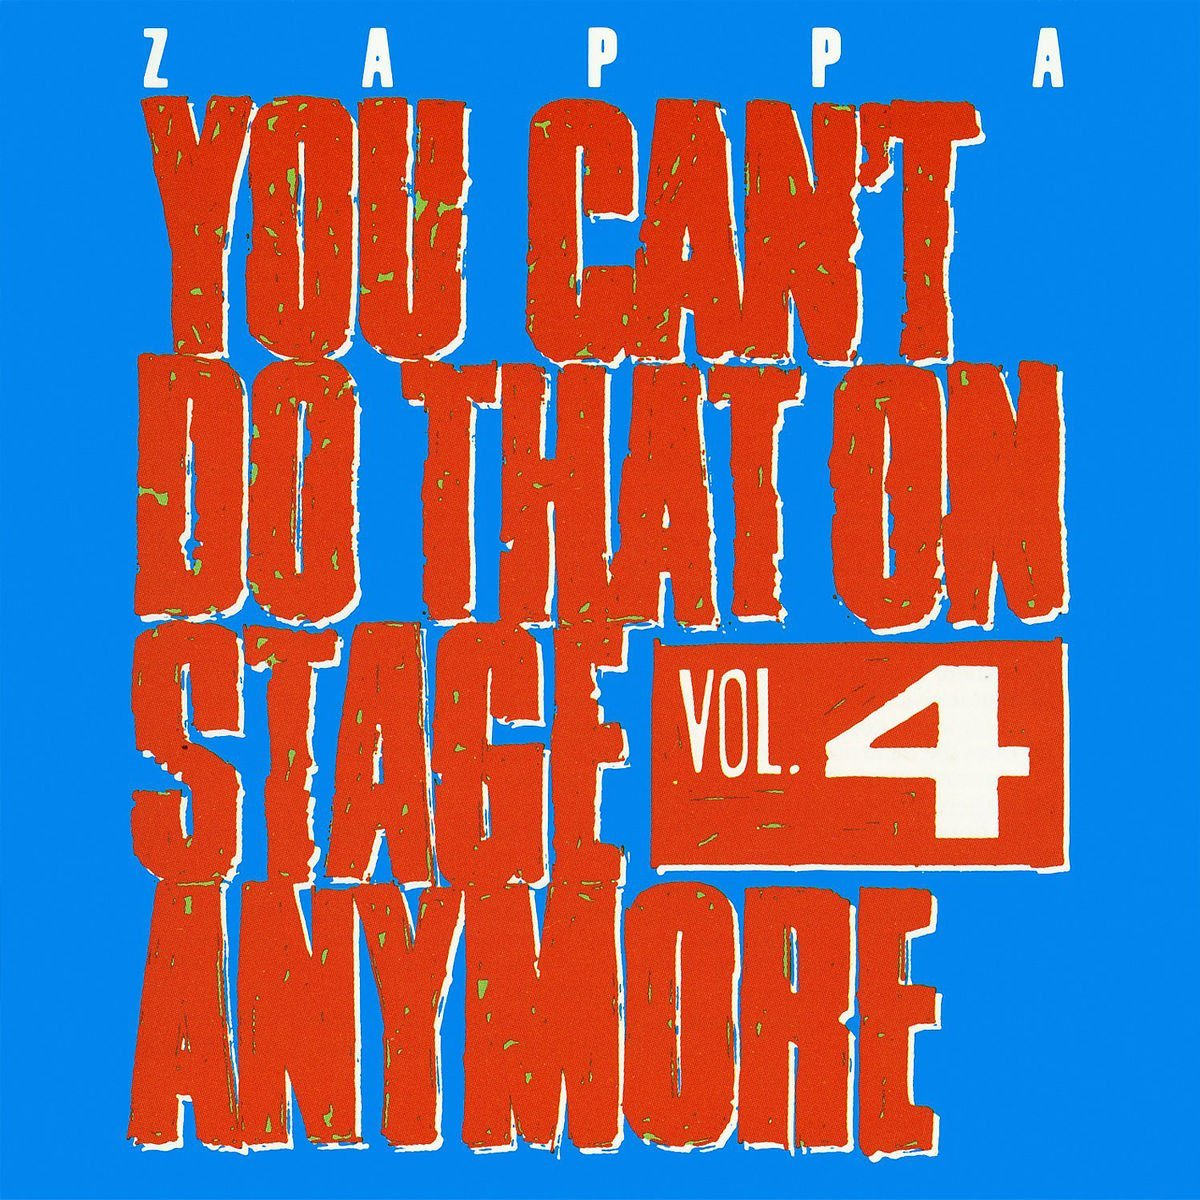 stevevai.it - Frank Zappa - You can't do that on stage anymore vol. 4